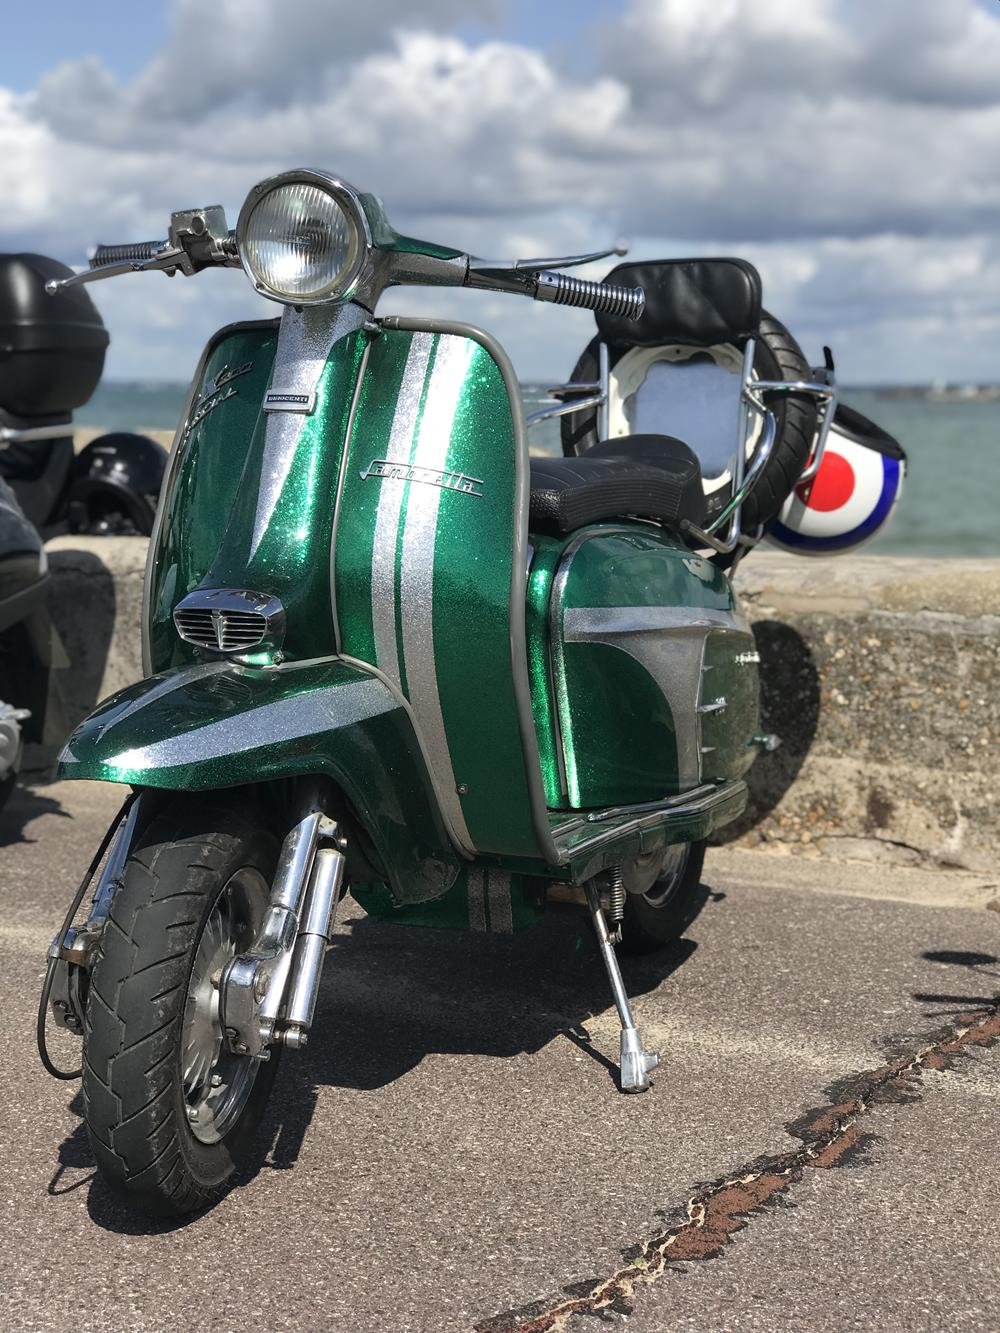 Green and silver Lambretta